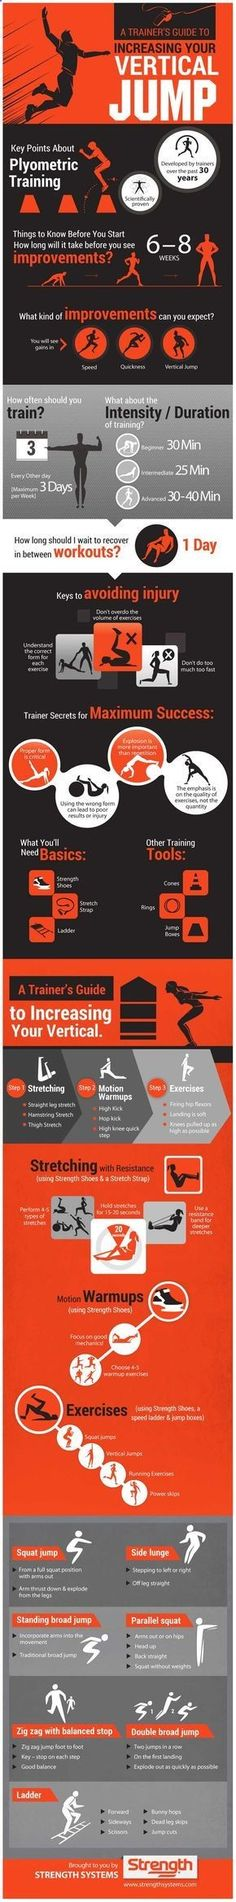 Get the facts and tips on exercises that will help increase your vertical jump.